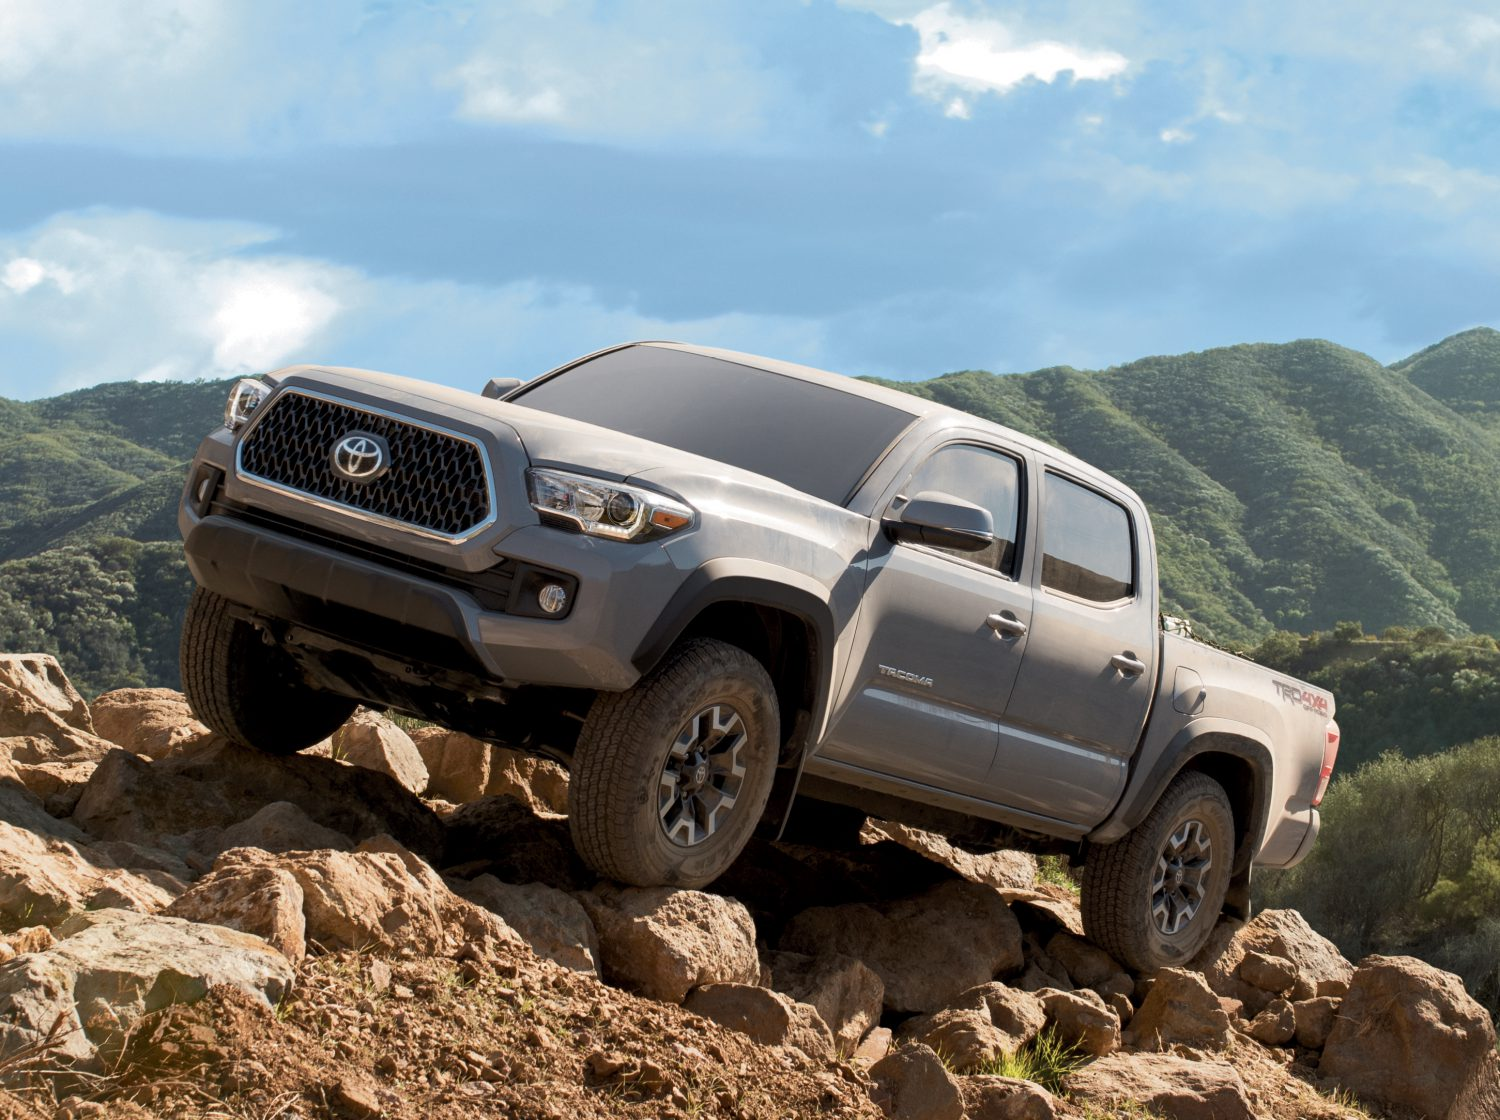 2019 Toyota Tacoma Adds Style, Capability with New SX